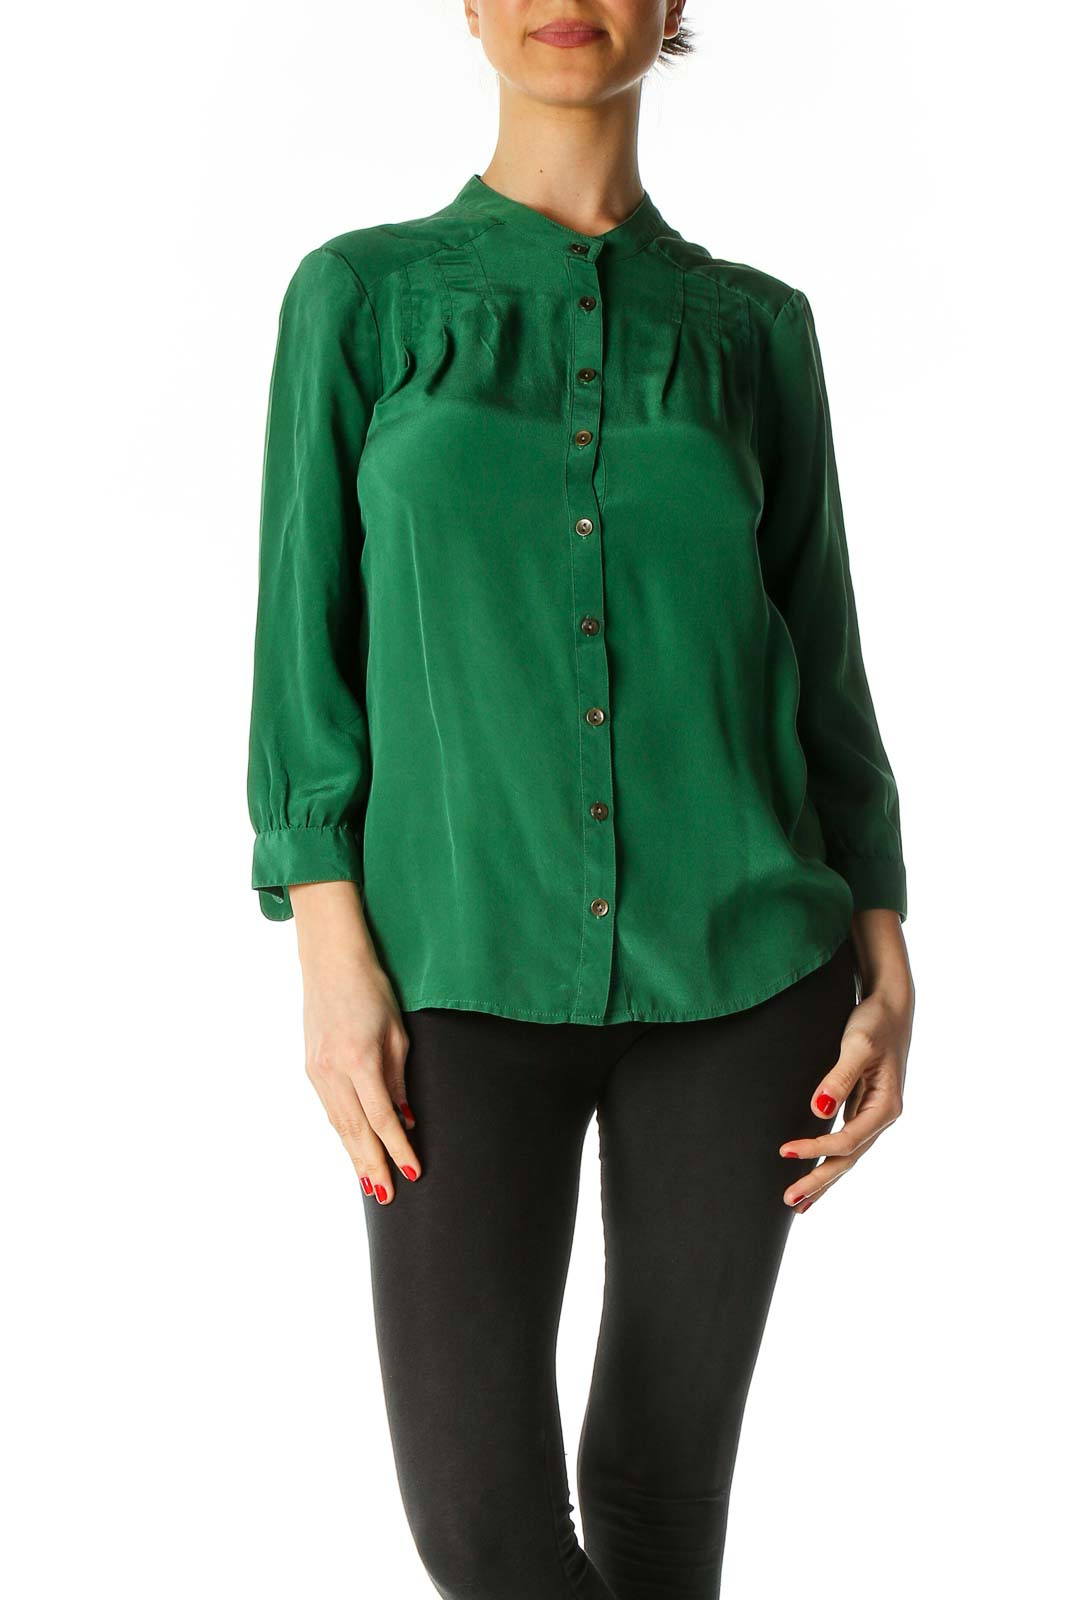 Green Solid Classic Blouse Front